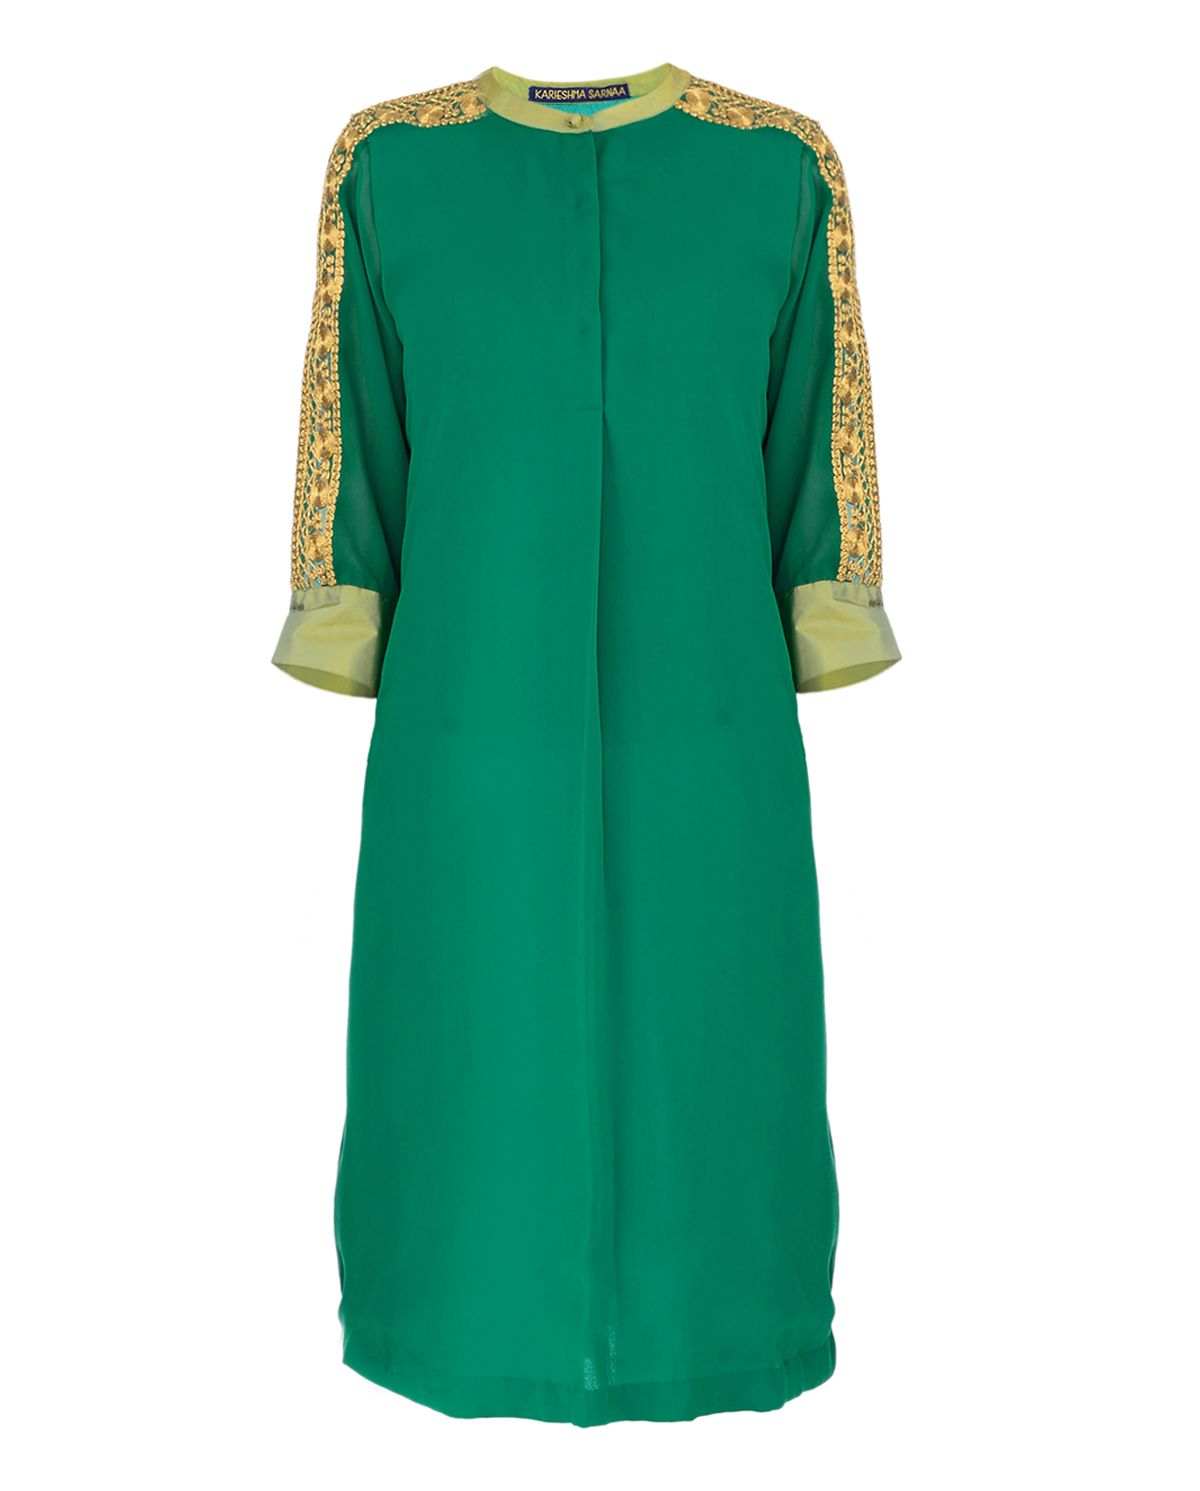 594e8157472 Emerald Green Tunic with Golden Thread Embroidery | Patterns | Green ...